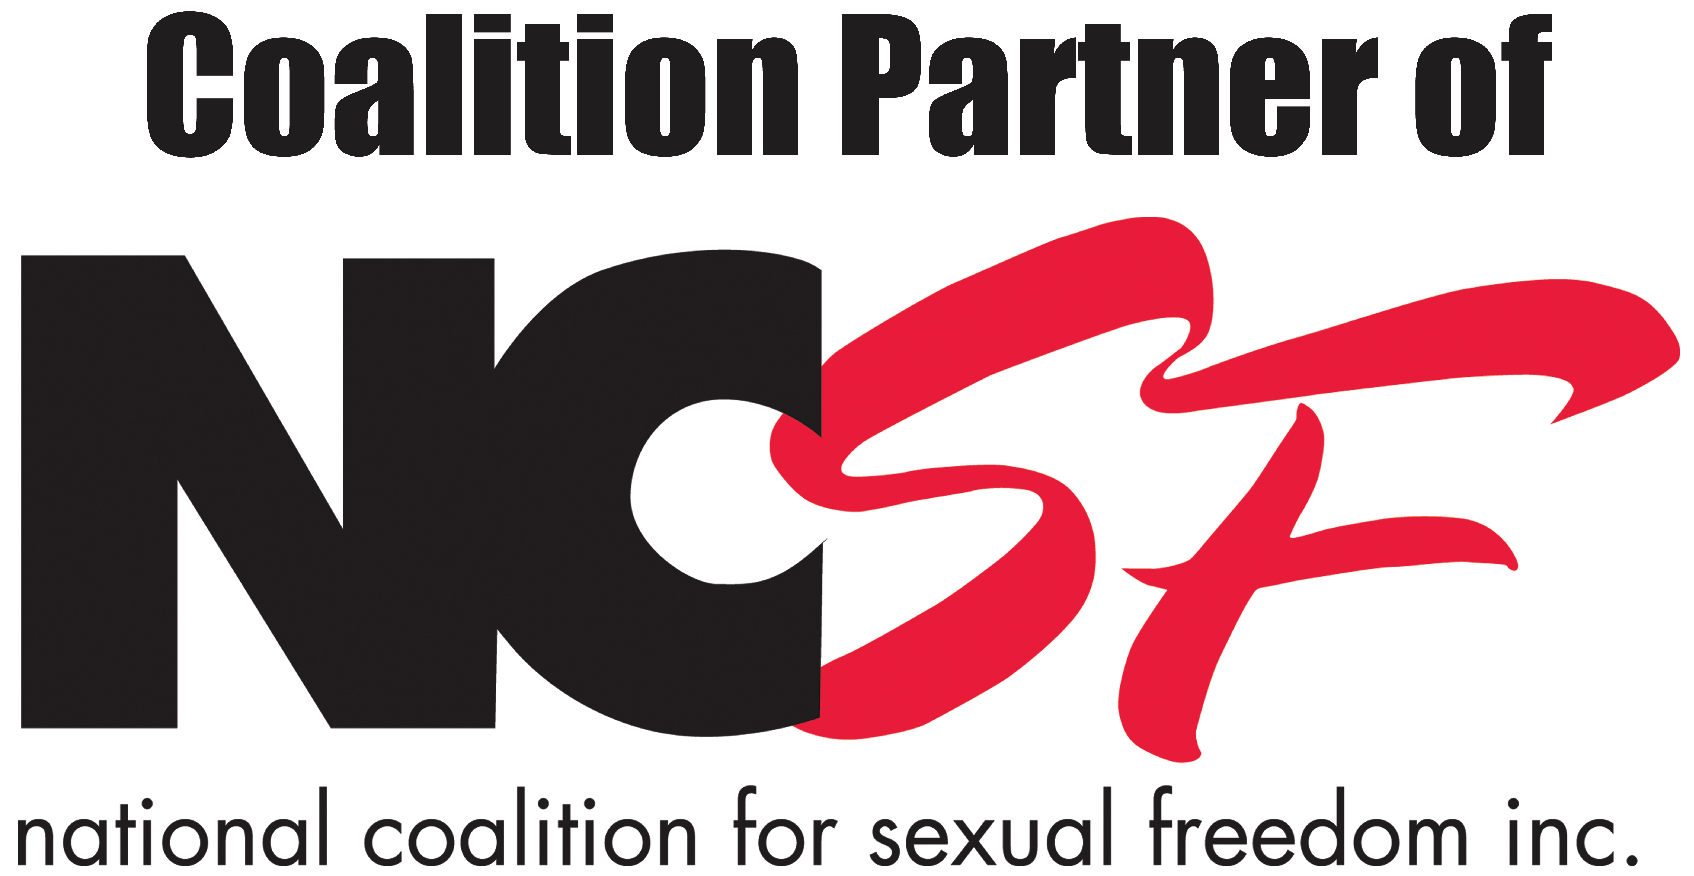 Coalition Partner of NCSF